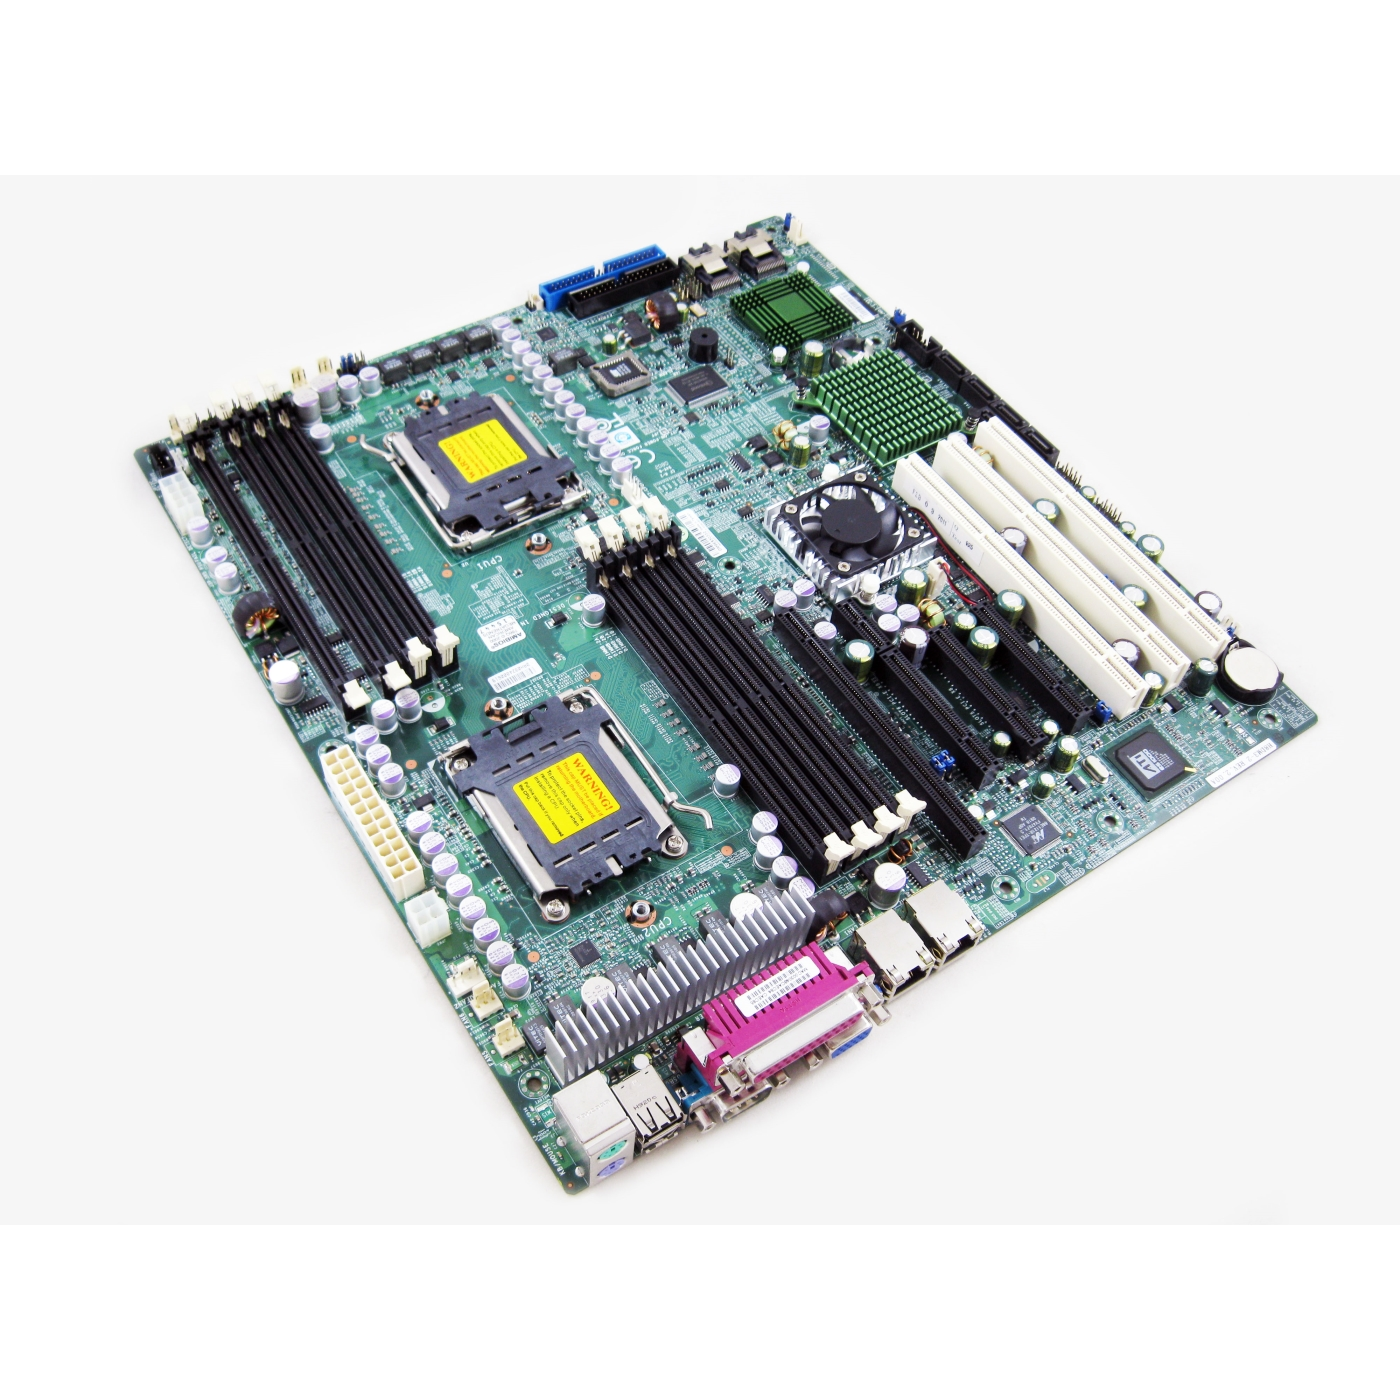 Supermicro MBD-H8DM3-2 Socket DDR2 400 Extended ATX Server Motherboard